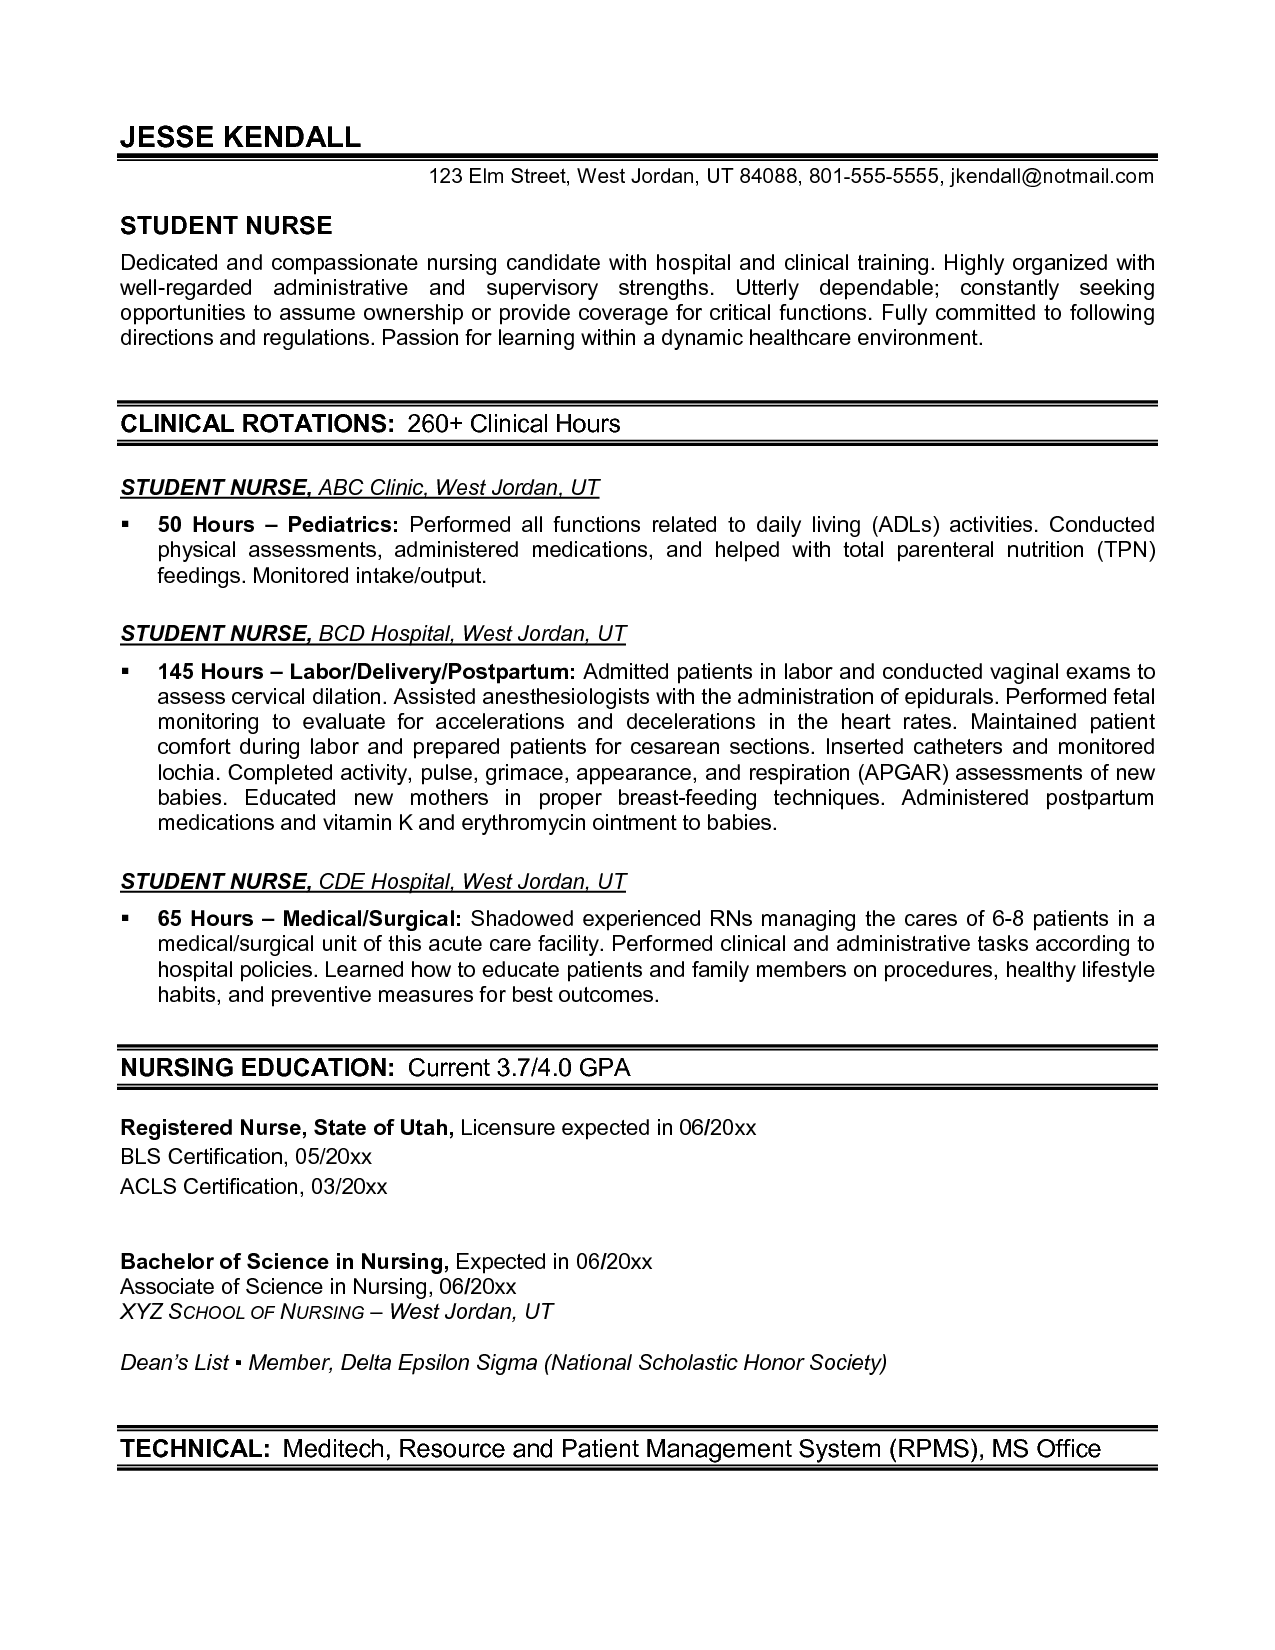 Resume Template Nursing | Nursing | Pinterest | Nursing Resume